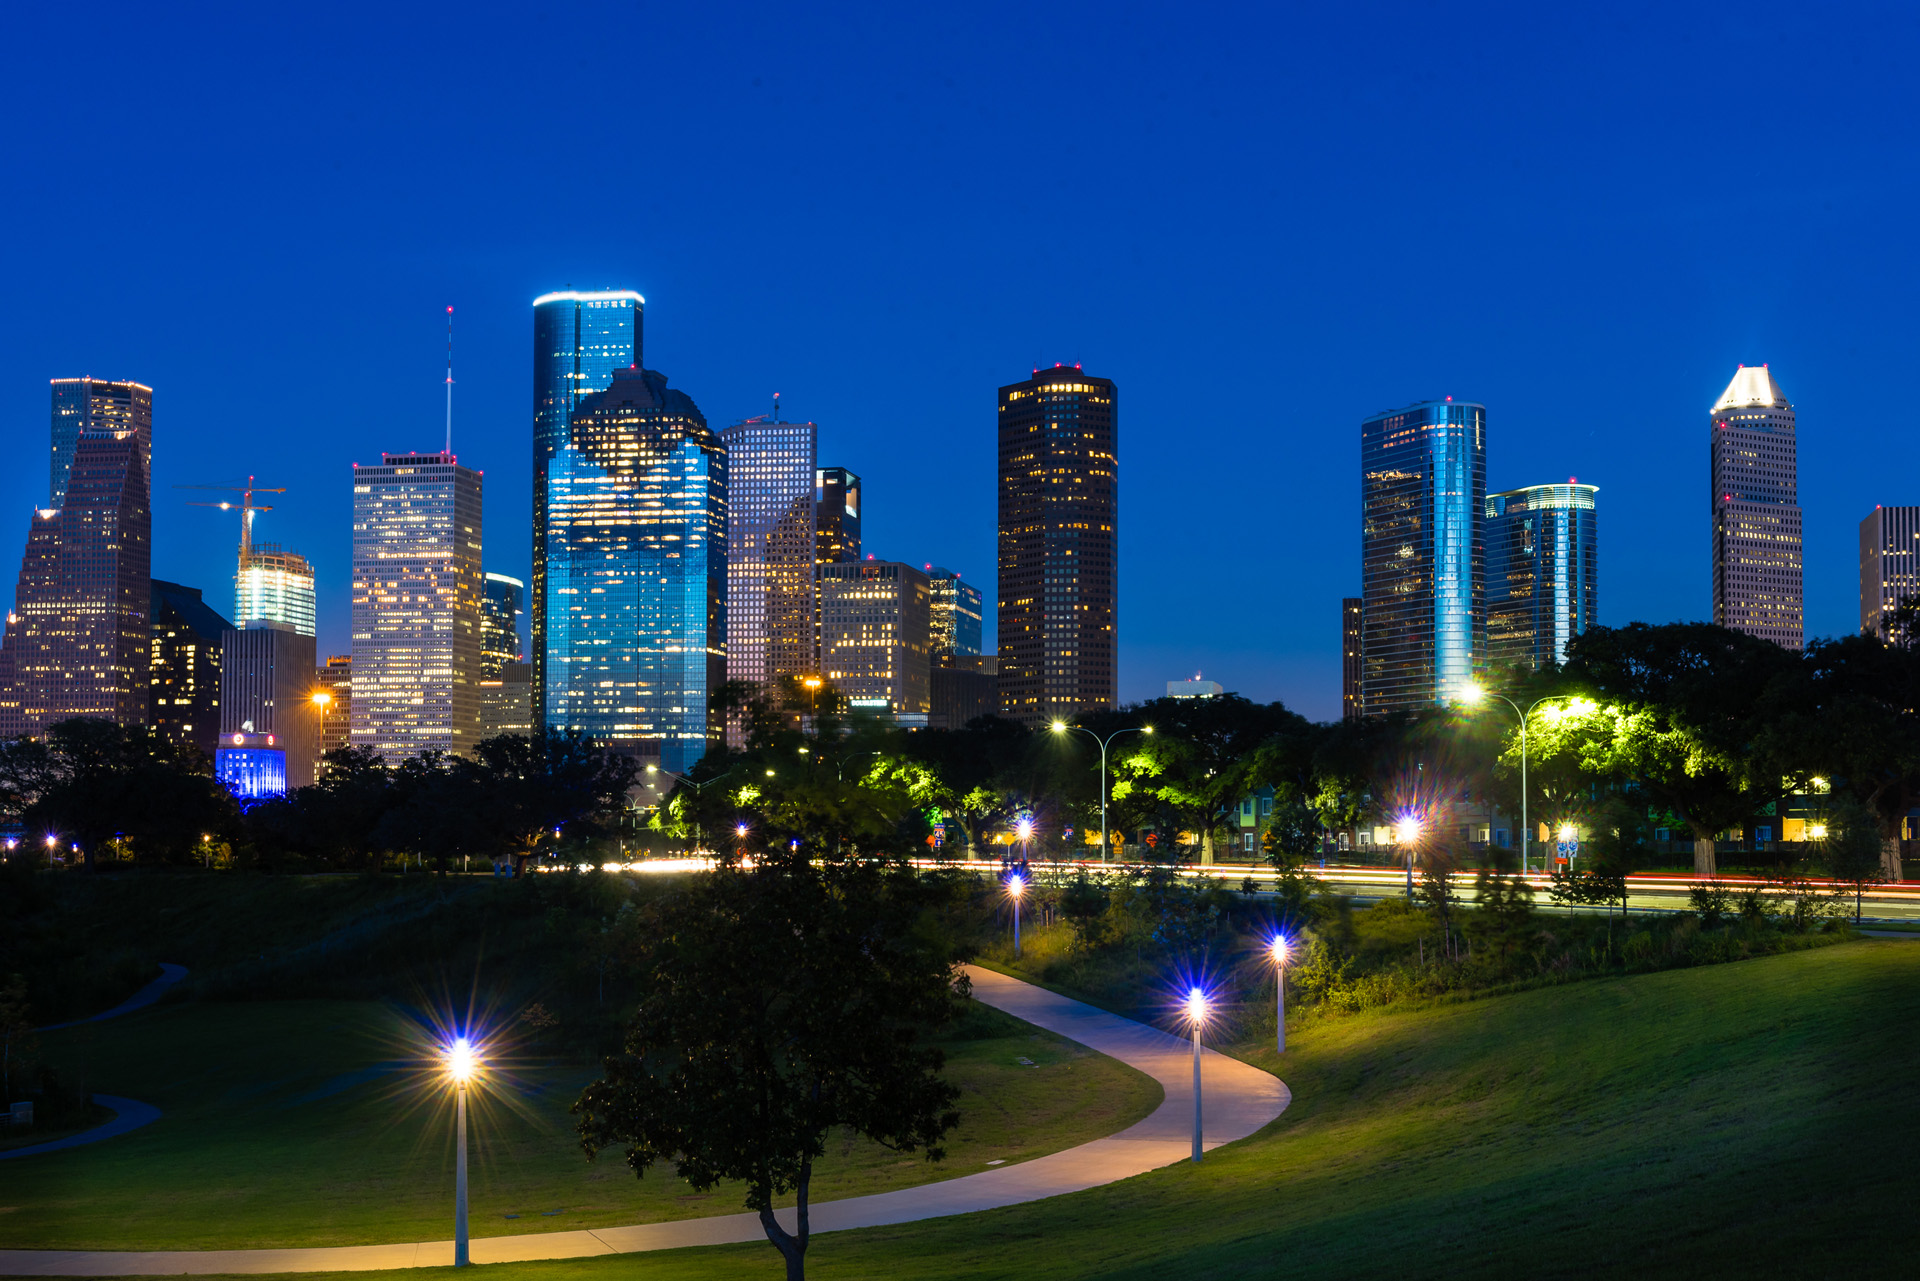 Illuminated Houston Skyline at Night.